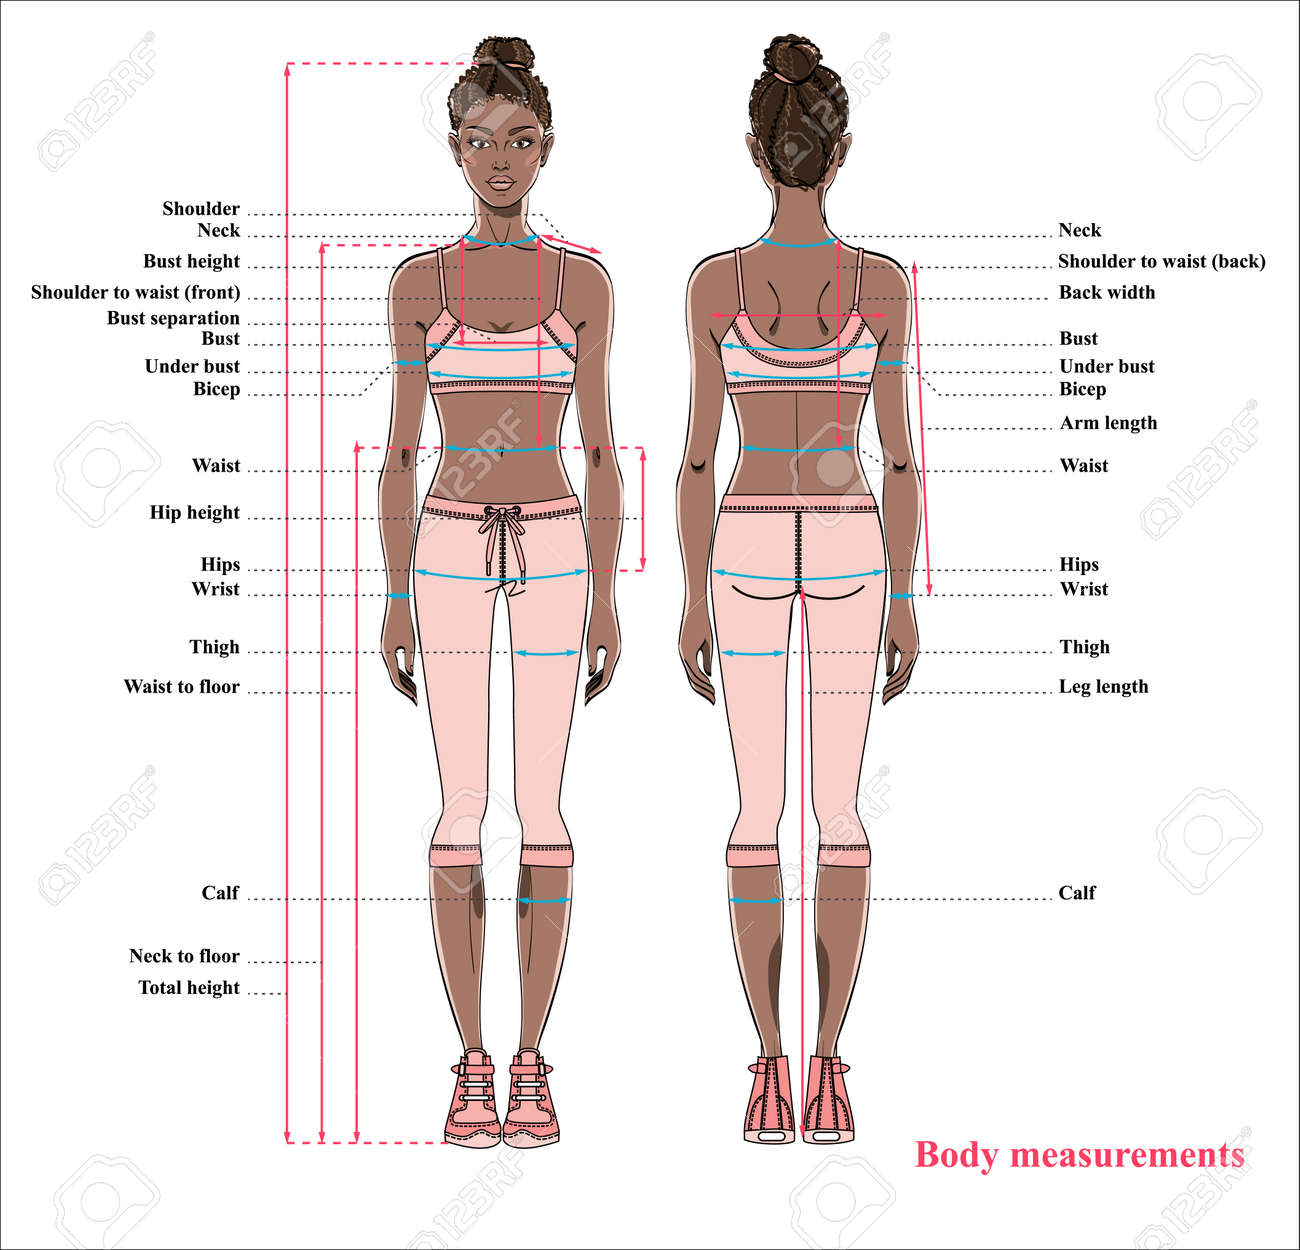 Wearing Clothes Of The Human Body Diagrams Blank - Circuit ...